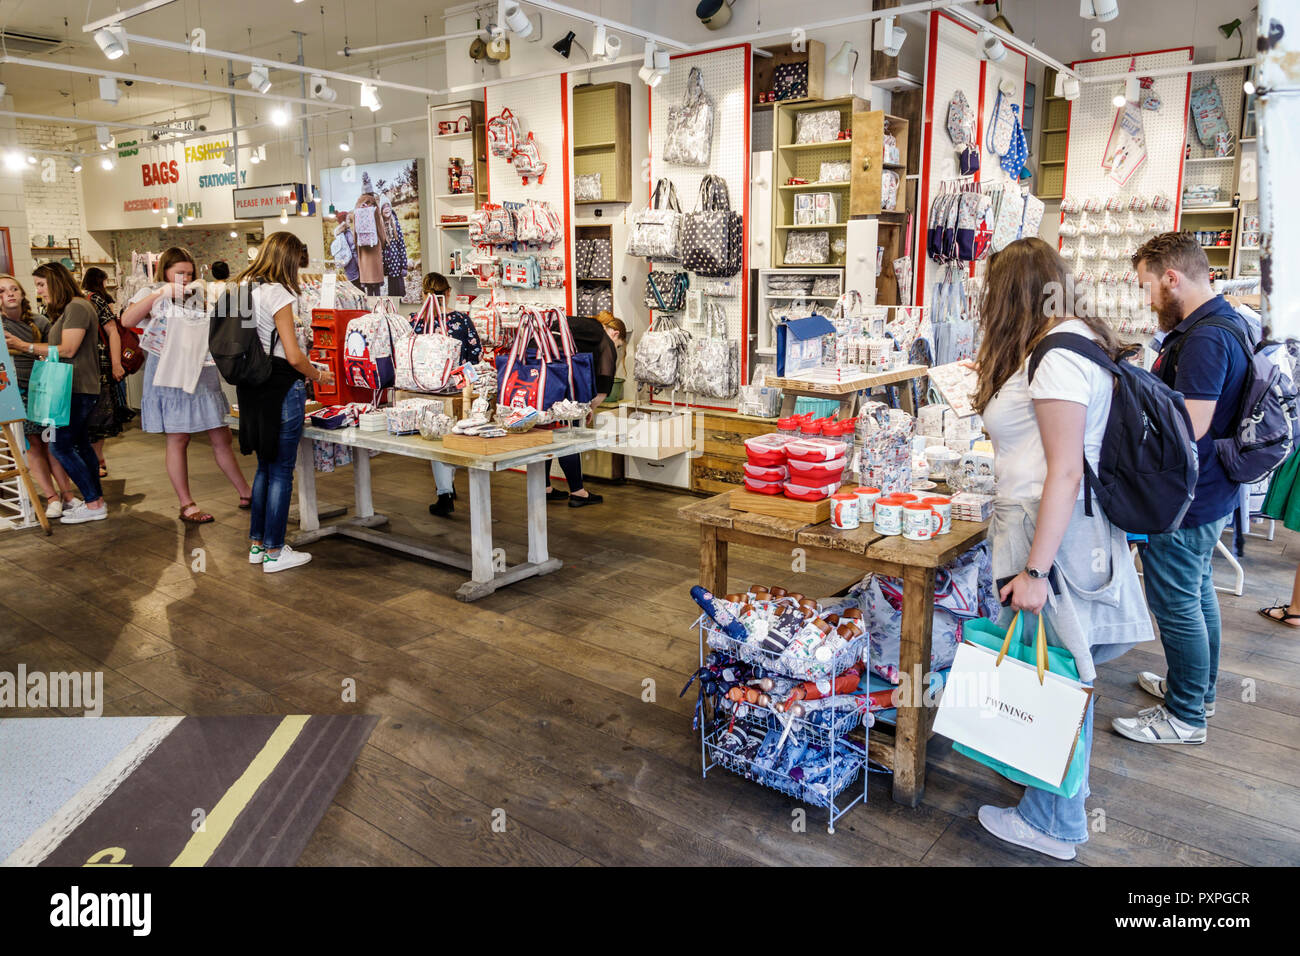 London England United Kingdom Great Britain West End St James's Piccadilly Cath Kidston inside interior shopping flagship store gifts home furnishings - Stock Image